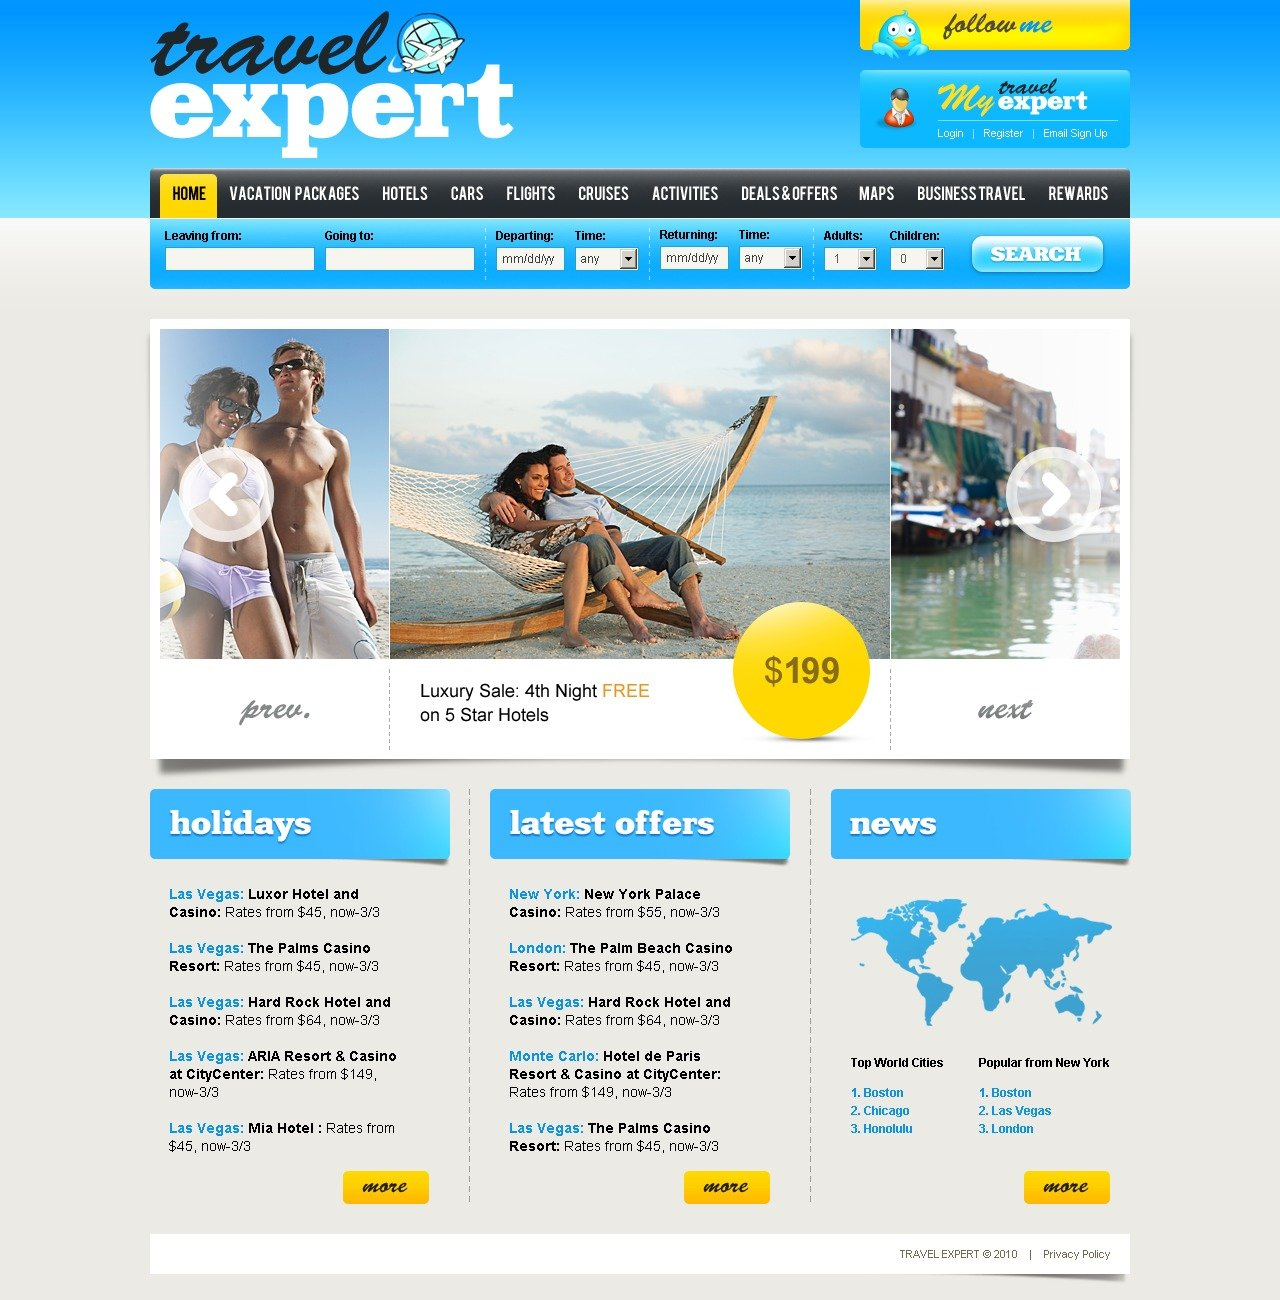 The Travel Expert Agency PSD Design 54095, one of the best PSD templates of its kind (travel, most popular, wide, jquery), also known as travel expert agency PSD template, compass PSD template, tour country PSD template, resort PSD template, spa PSD template, flight hotel PSD template, car PSD template, rental PSD template, cruise PSD template, sights PSD template, reservation PSD template, location PSD template, authorization PSD template, ticket PSD template, guide PSD template, beach PSD template, sea PSD template, relaxation PSD template, recreation PSD template, impression PSD template, air PSD template, liner PSD template, traveling PSD template, apartment PSD template, vacation PSD template, rest PSD template, comfort PSD template, destination PSD template, expl and related with travel expert agency, compass, tour country, resort, spa, flight hotel, car, rental, cruise, sights, reservation, location, authorization, ticket, guide, beach, sea, relaxation, recreation, impression, air, liner, traveling, apartment, vacation, rest, comfort, destination, expl, etc.